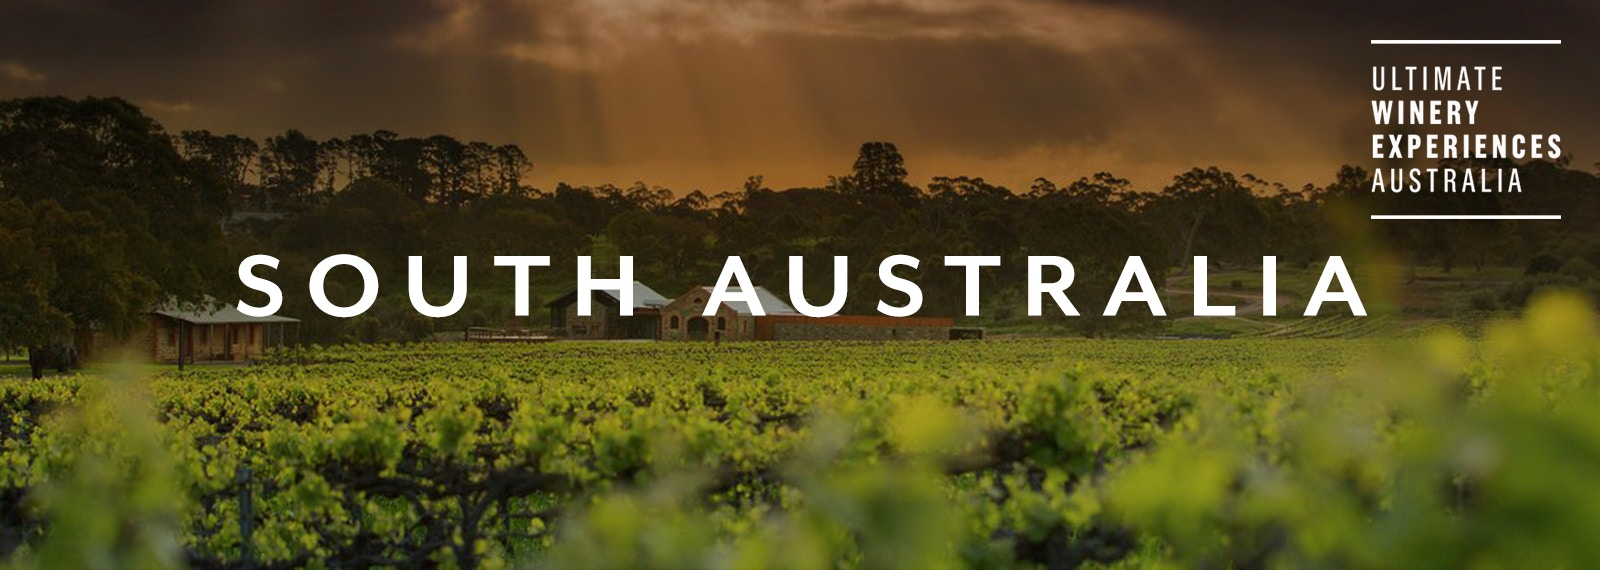 Uwea south australia state tixstar in partnership with ultimate winery experiences australia allows you to discover book your ultimate winery experience in south australia from wine urtaz Gallery